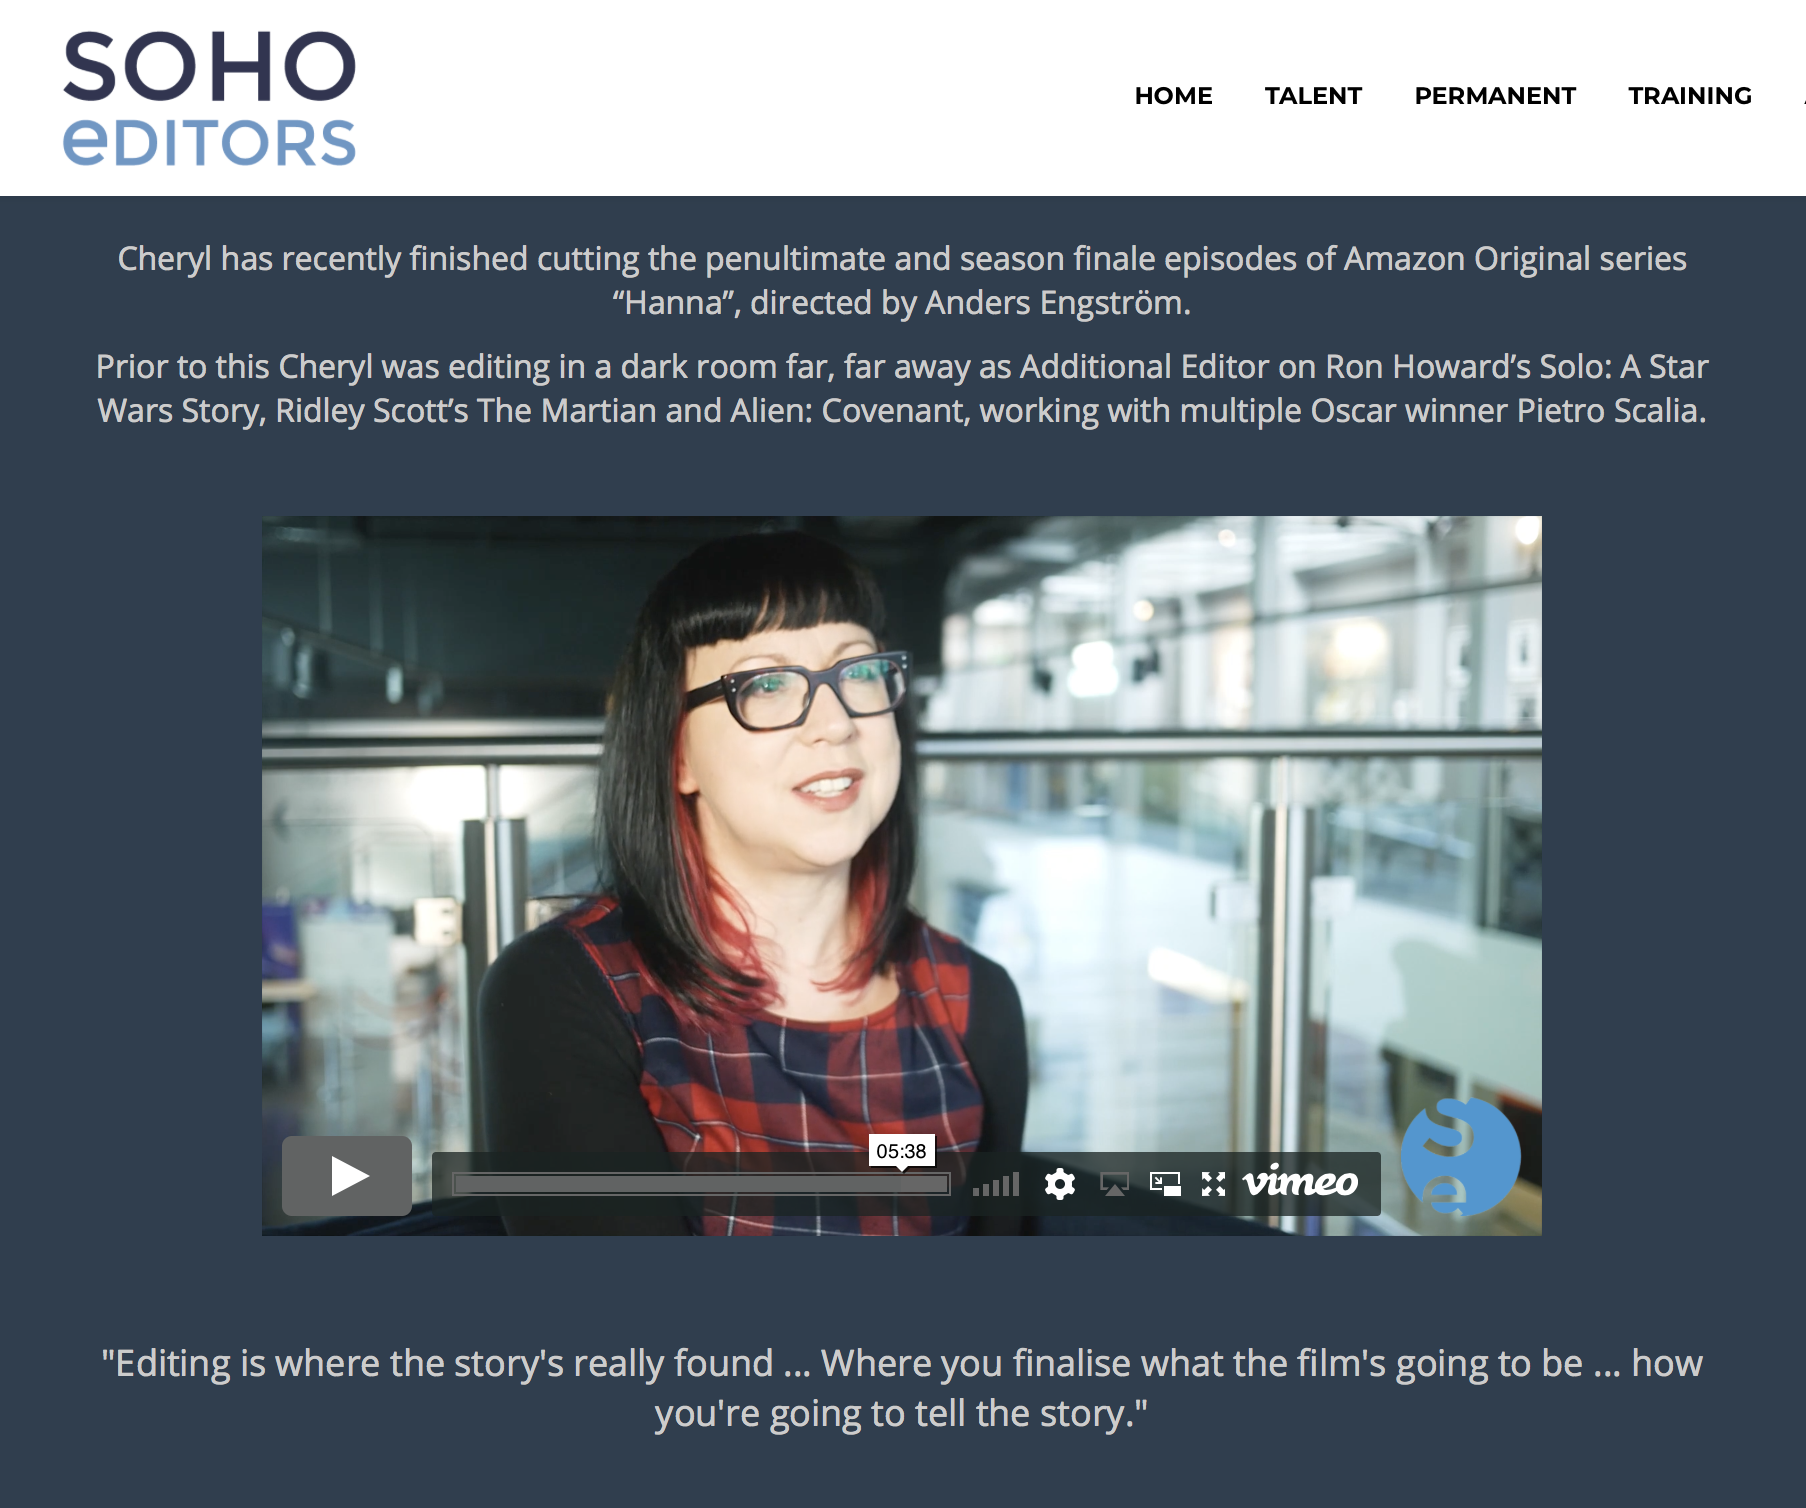 Full interview available on Soho Editors Creative's Blog